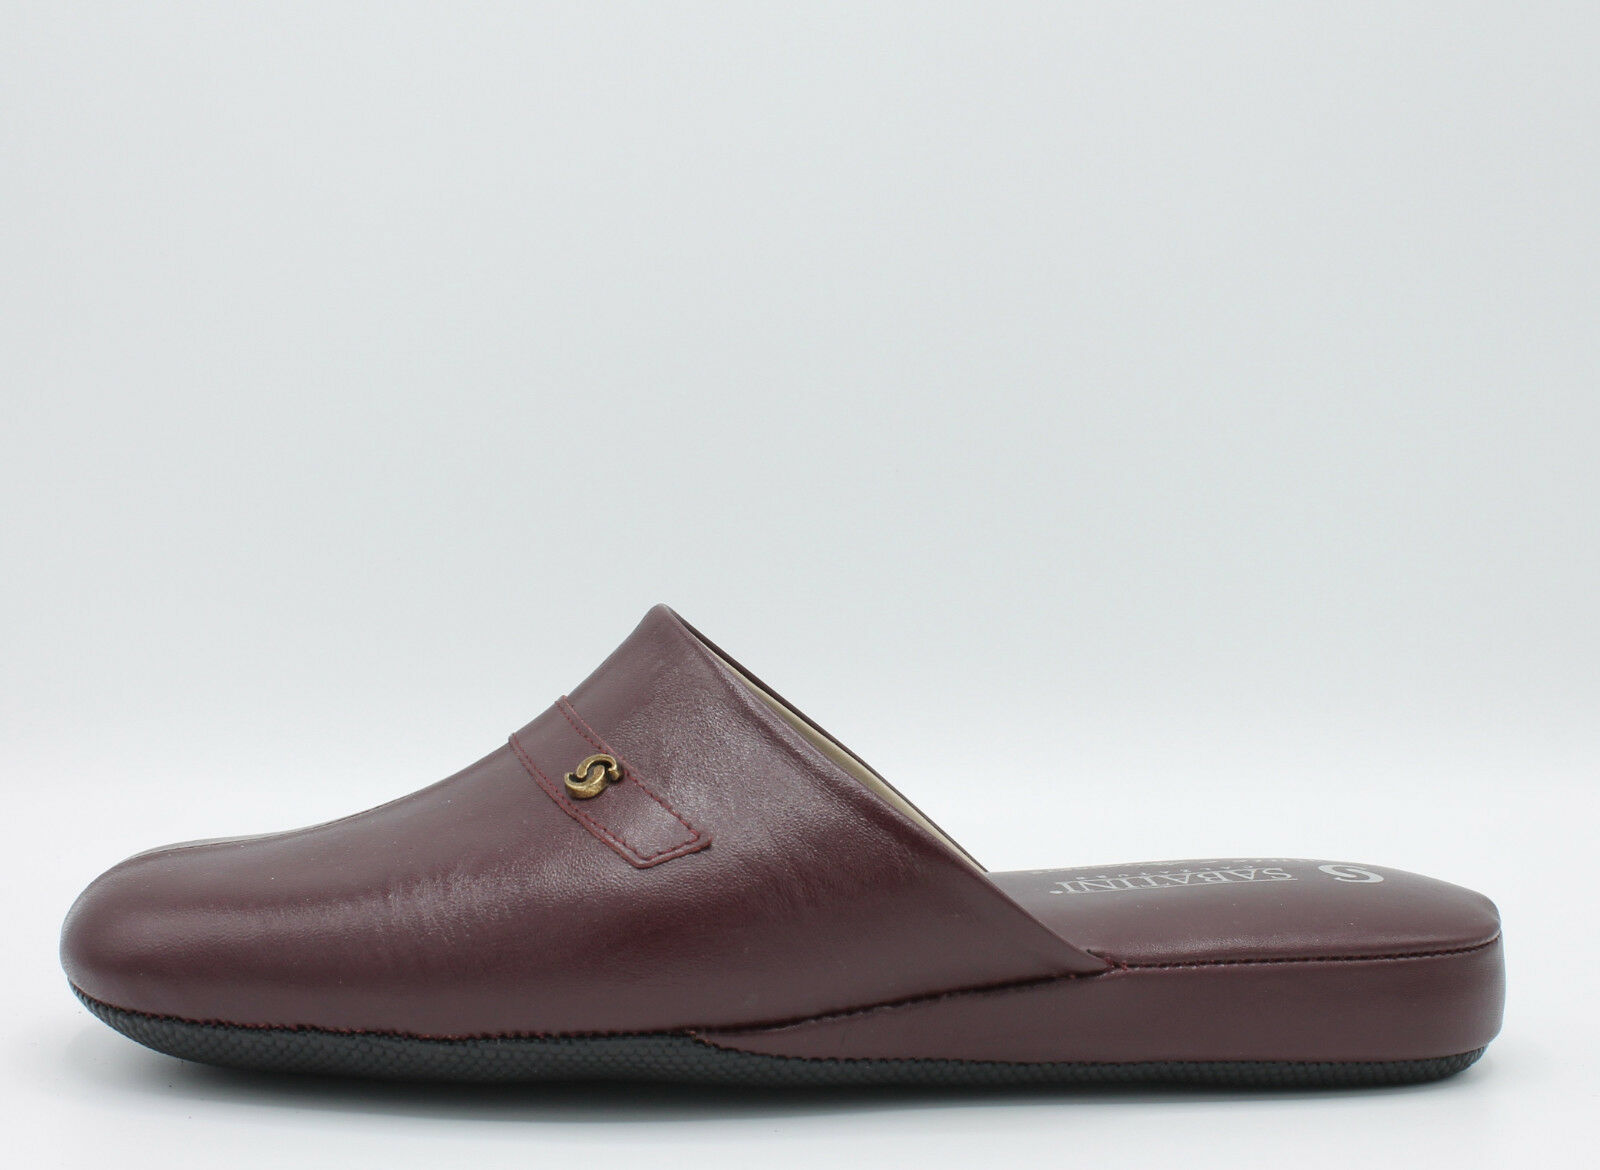 SABATINI SLIPPERS SMOKING MAN, LEATHER BURGUNDY LEATHER SOLE RUBBER, SAB368